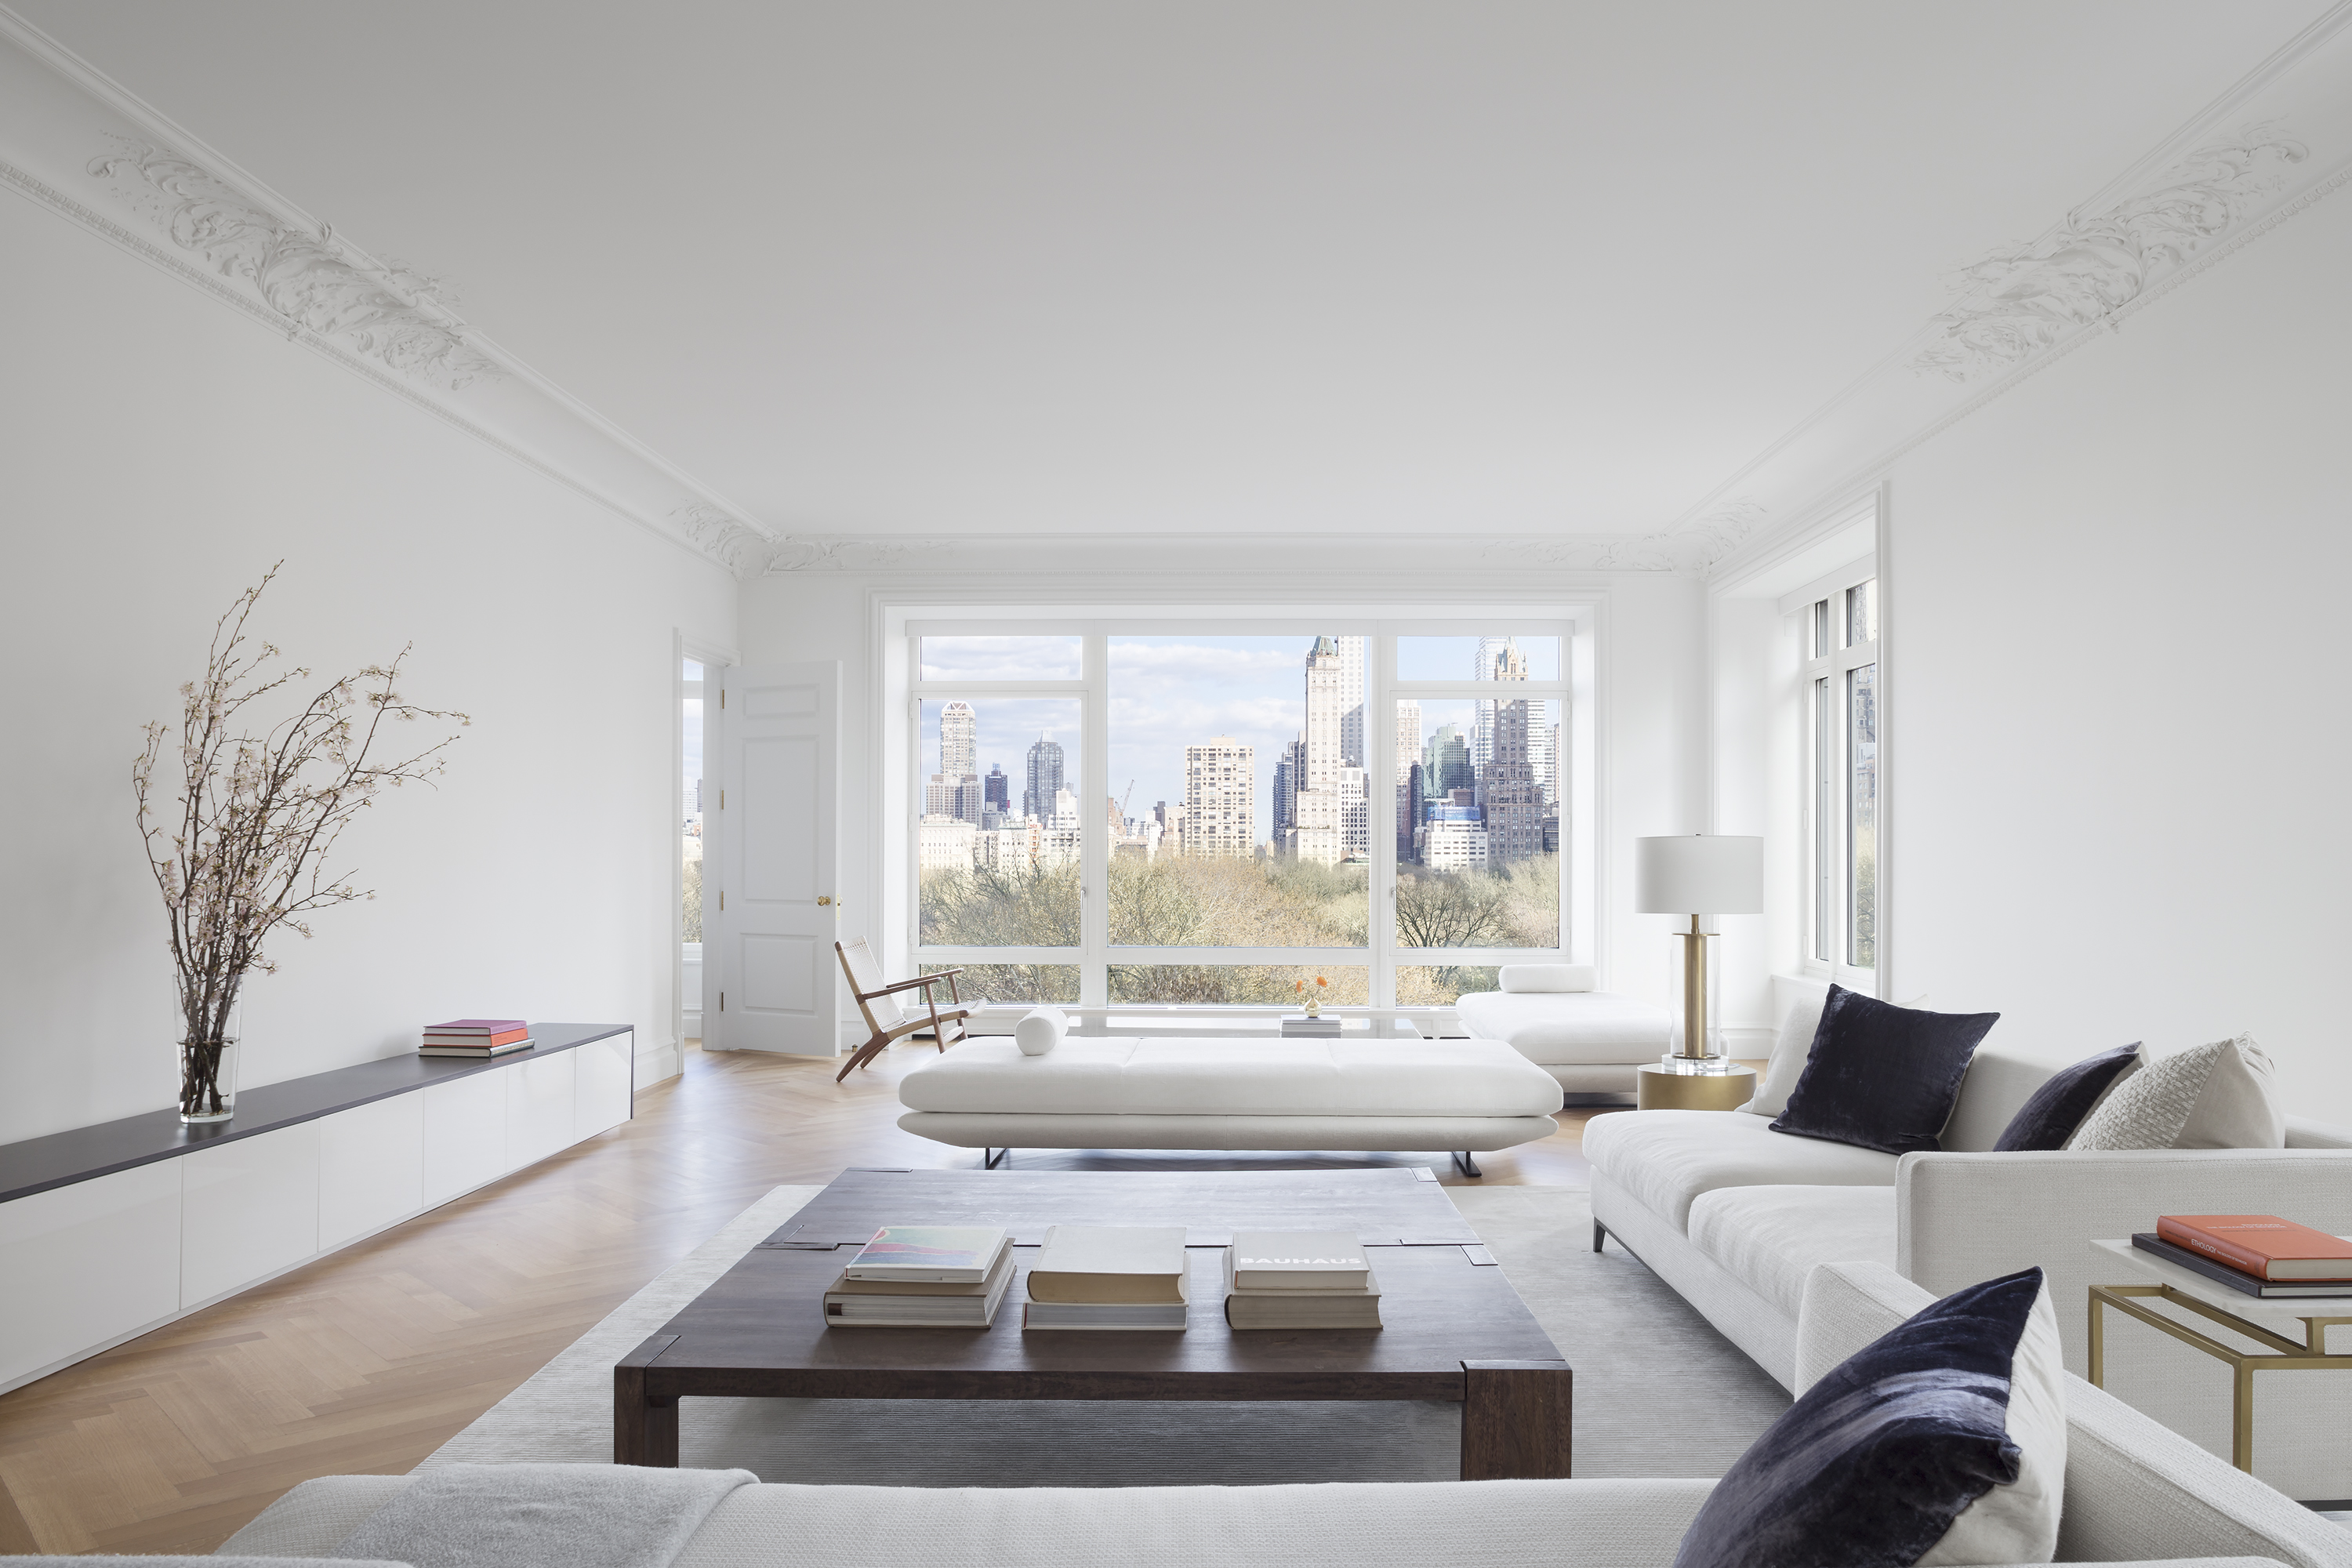 Living room. The walls are painted white. There is a white couch, a coffee table, a shelf with a plant in a planter, and large floor to ceiling windows on the far wall.